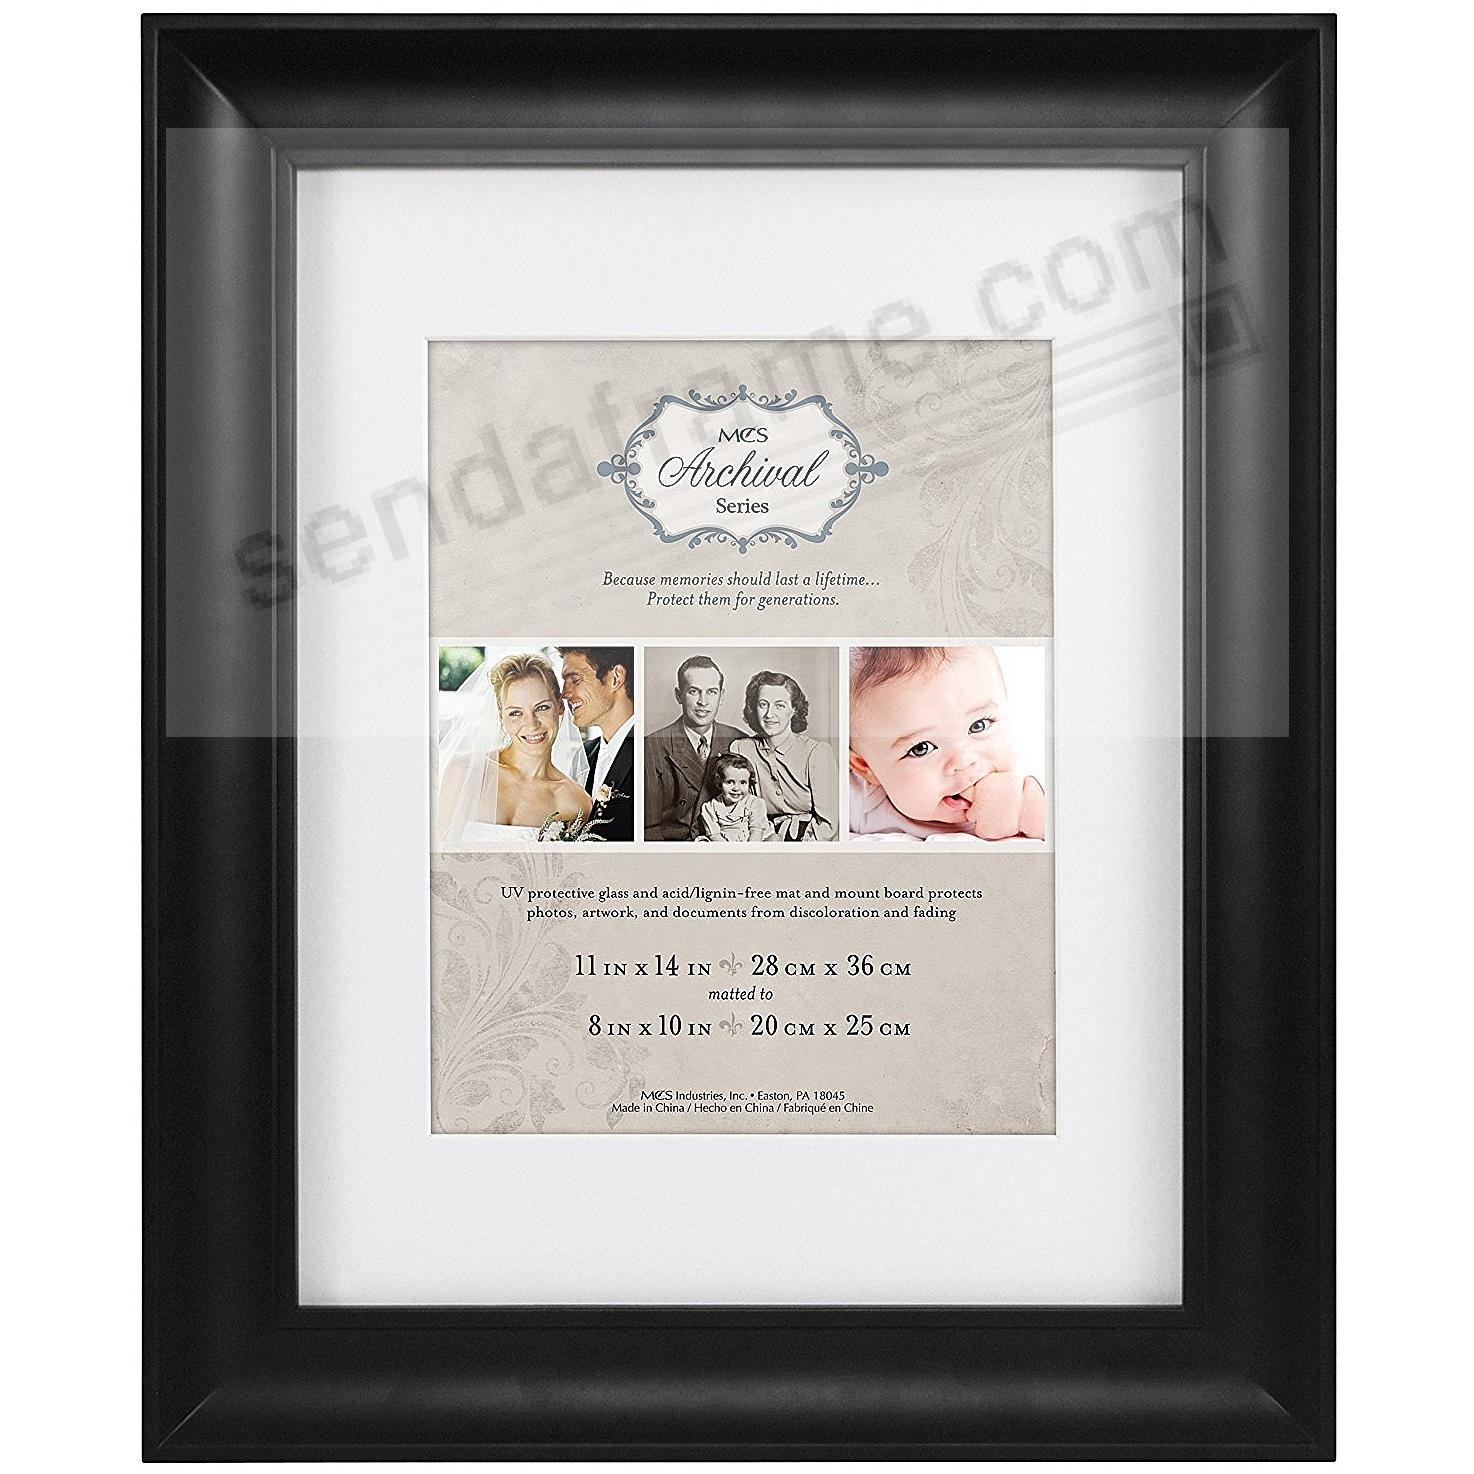 Black ARCHIVAL SERIES Matted Wood frame 16x20/11x14 by MCS®